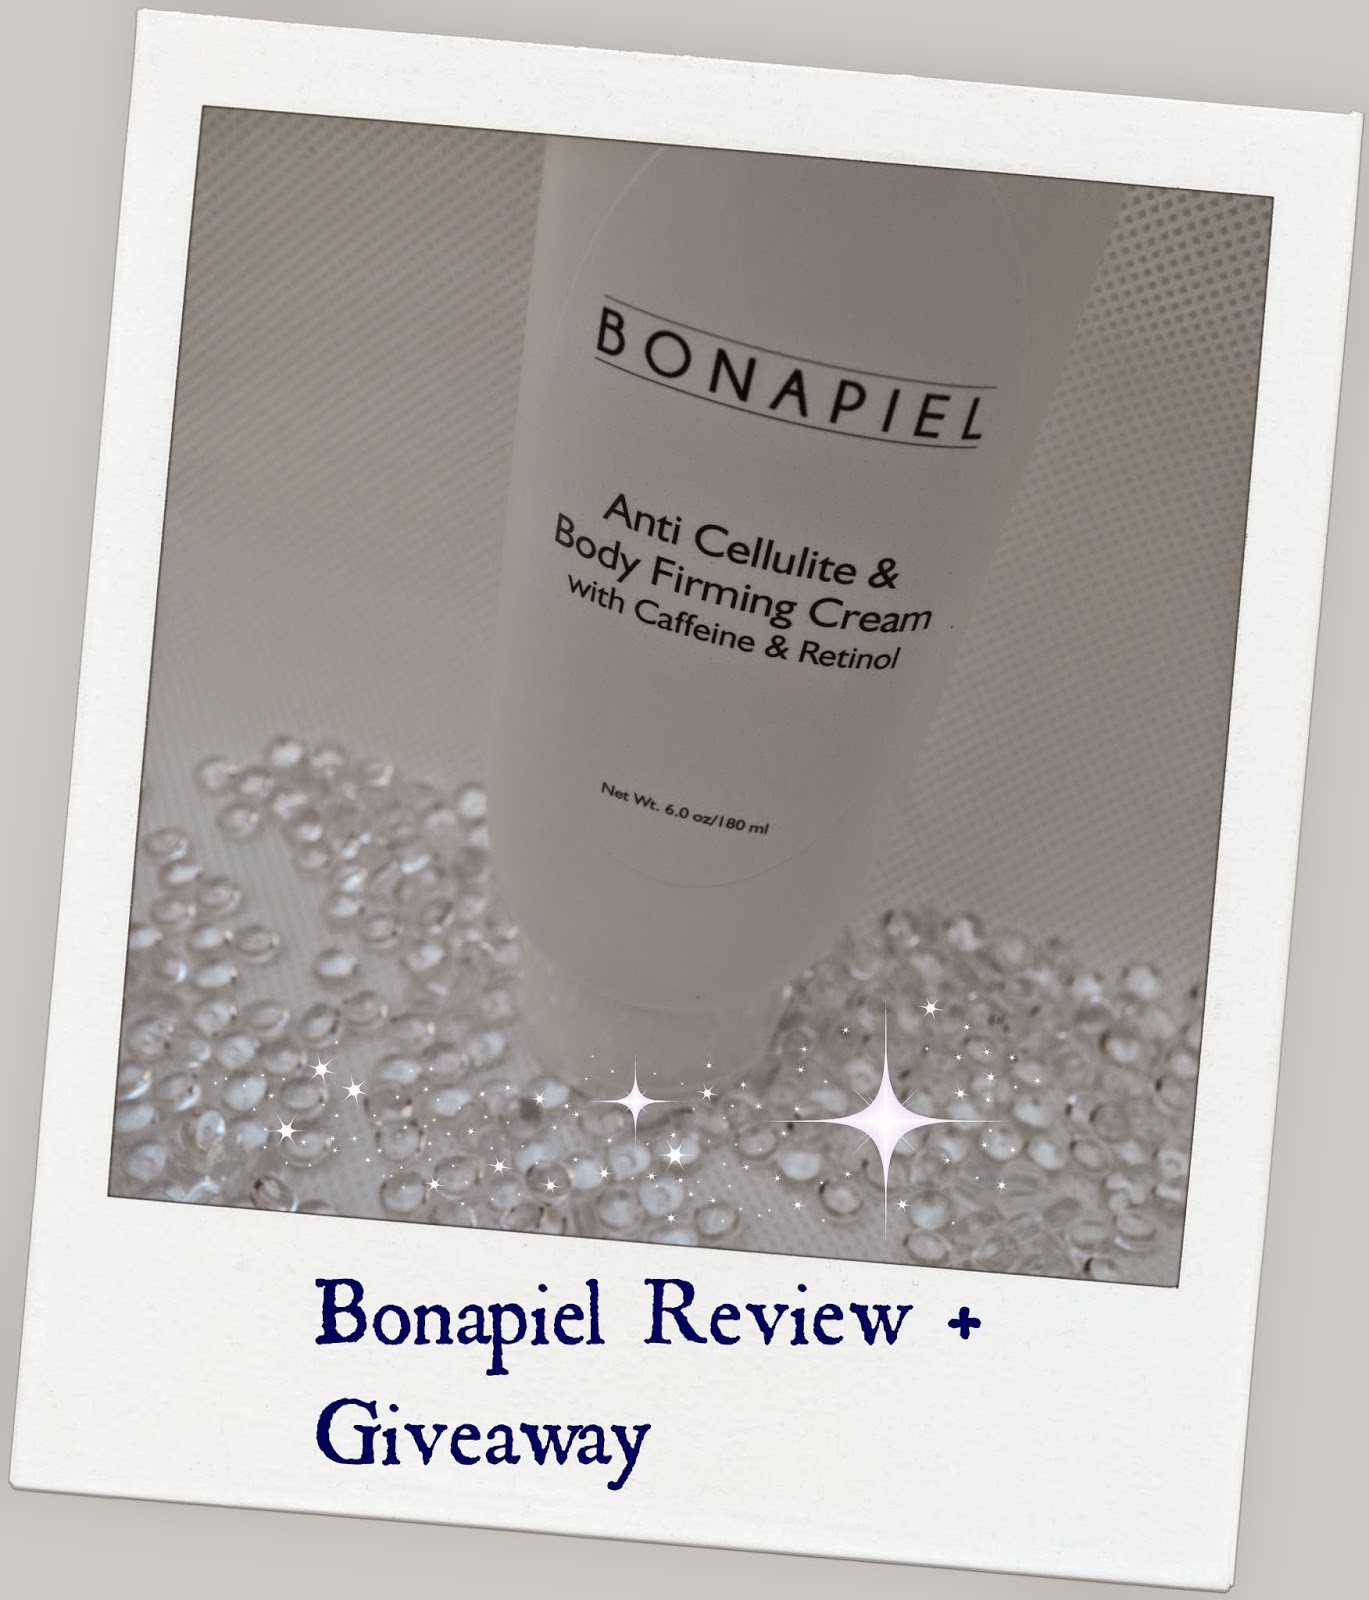 Bonapiel Cellulite Treatment & Body Firming Cream